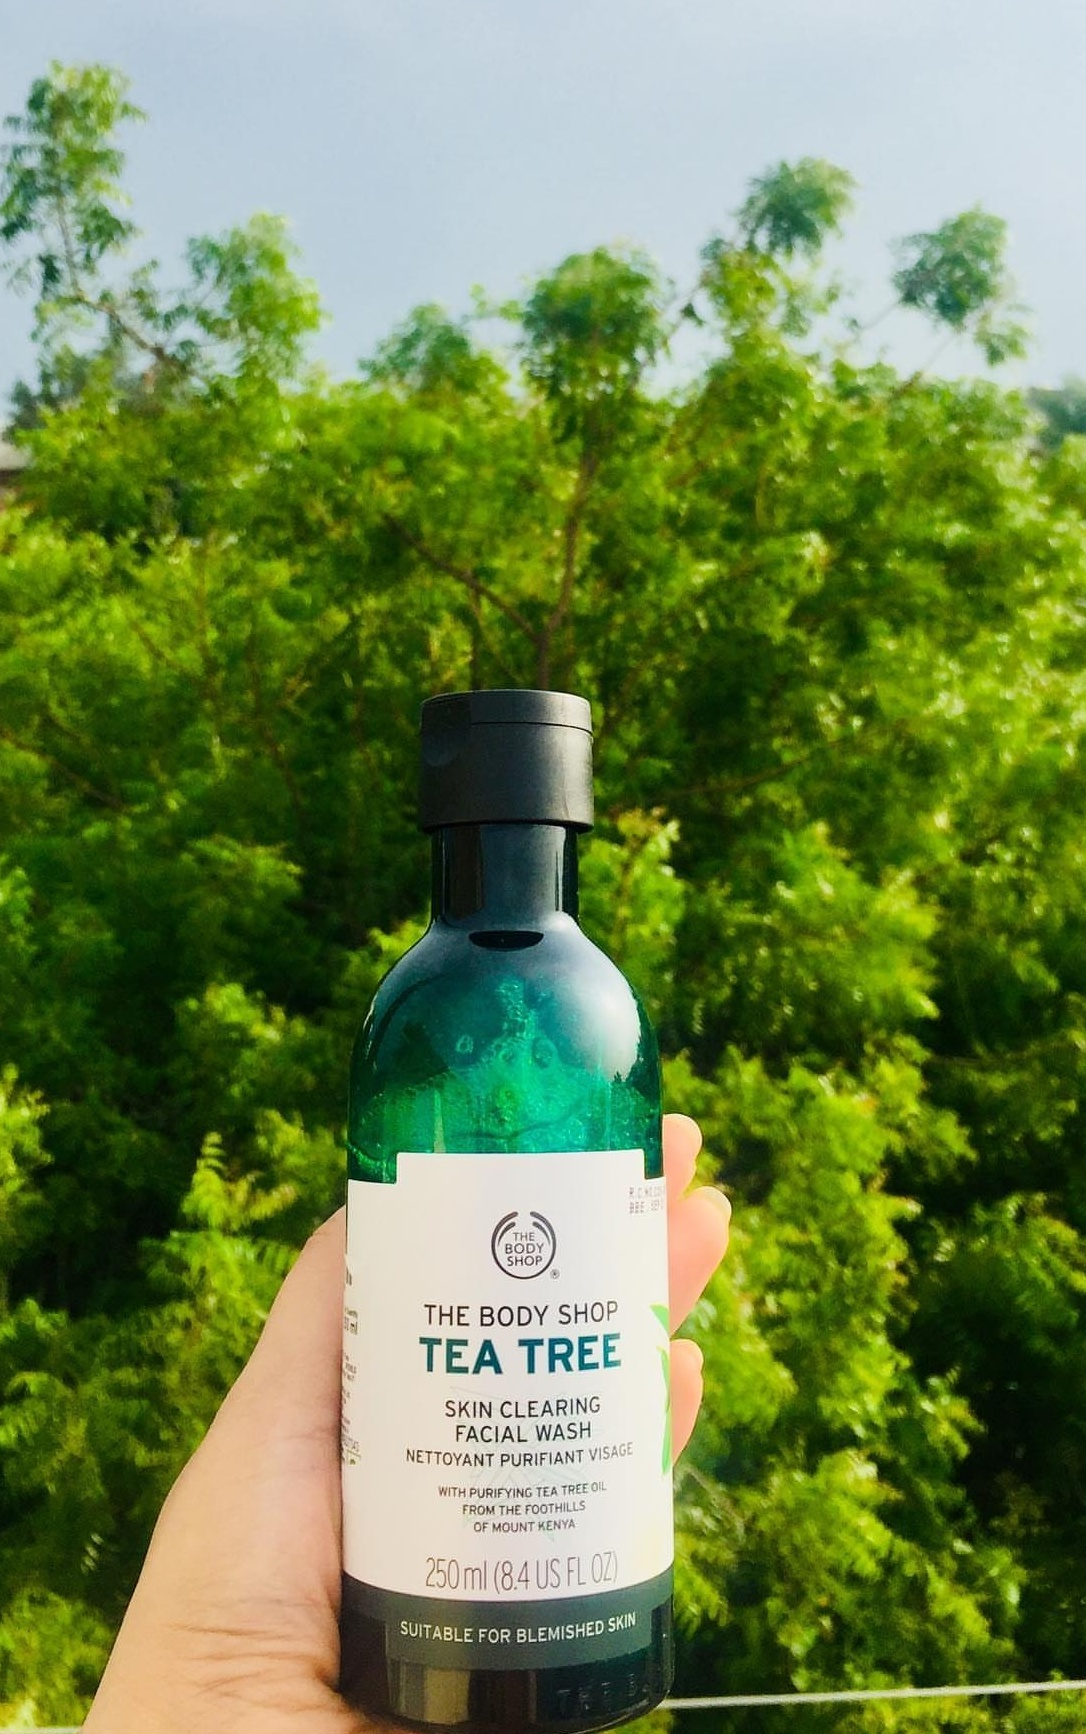 The Body Shop Tea Tree Skin Clearing Facial Wash-Tea tree skin clearing face wash-By garima.sharma28-2